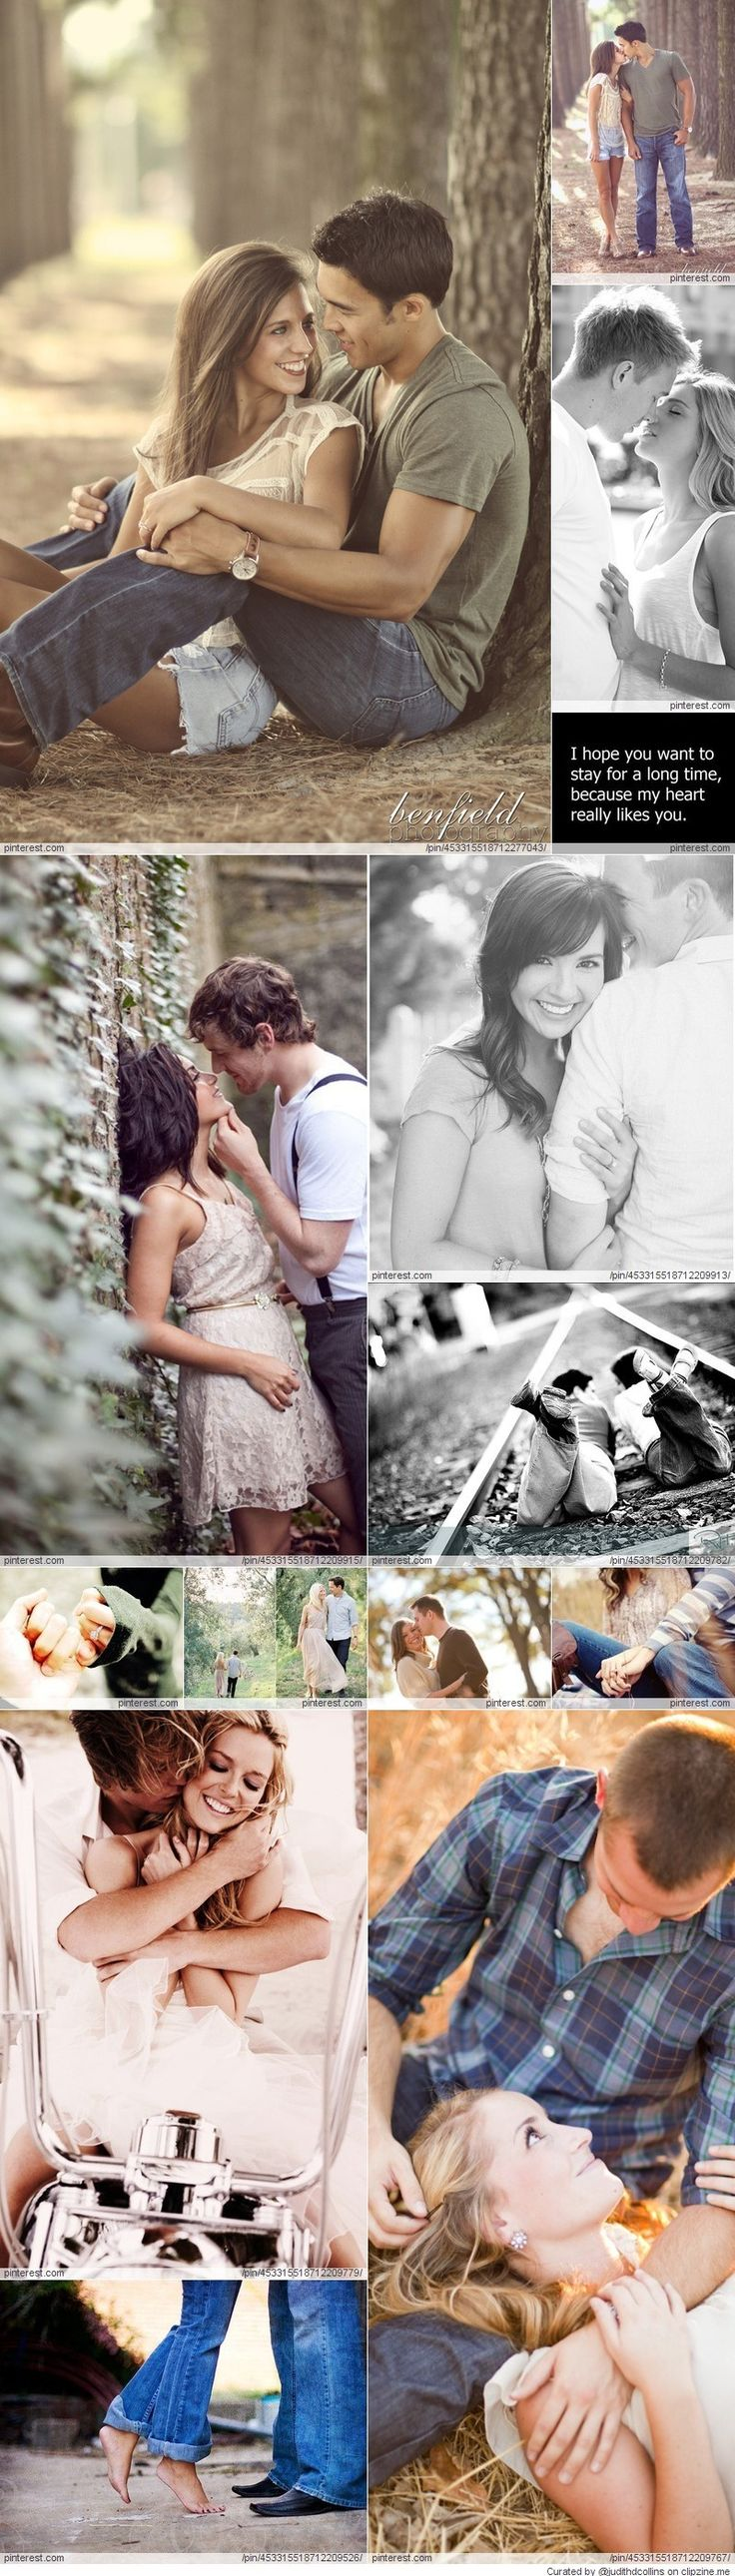 Engagement Photography: so cute! These are some great outfit ideas too!